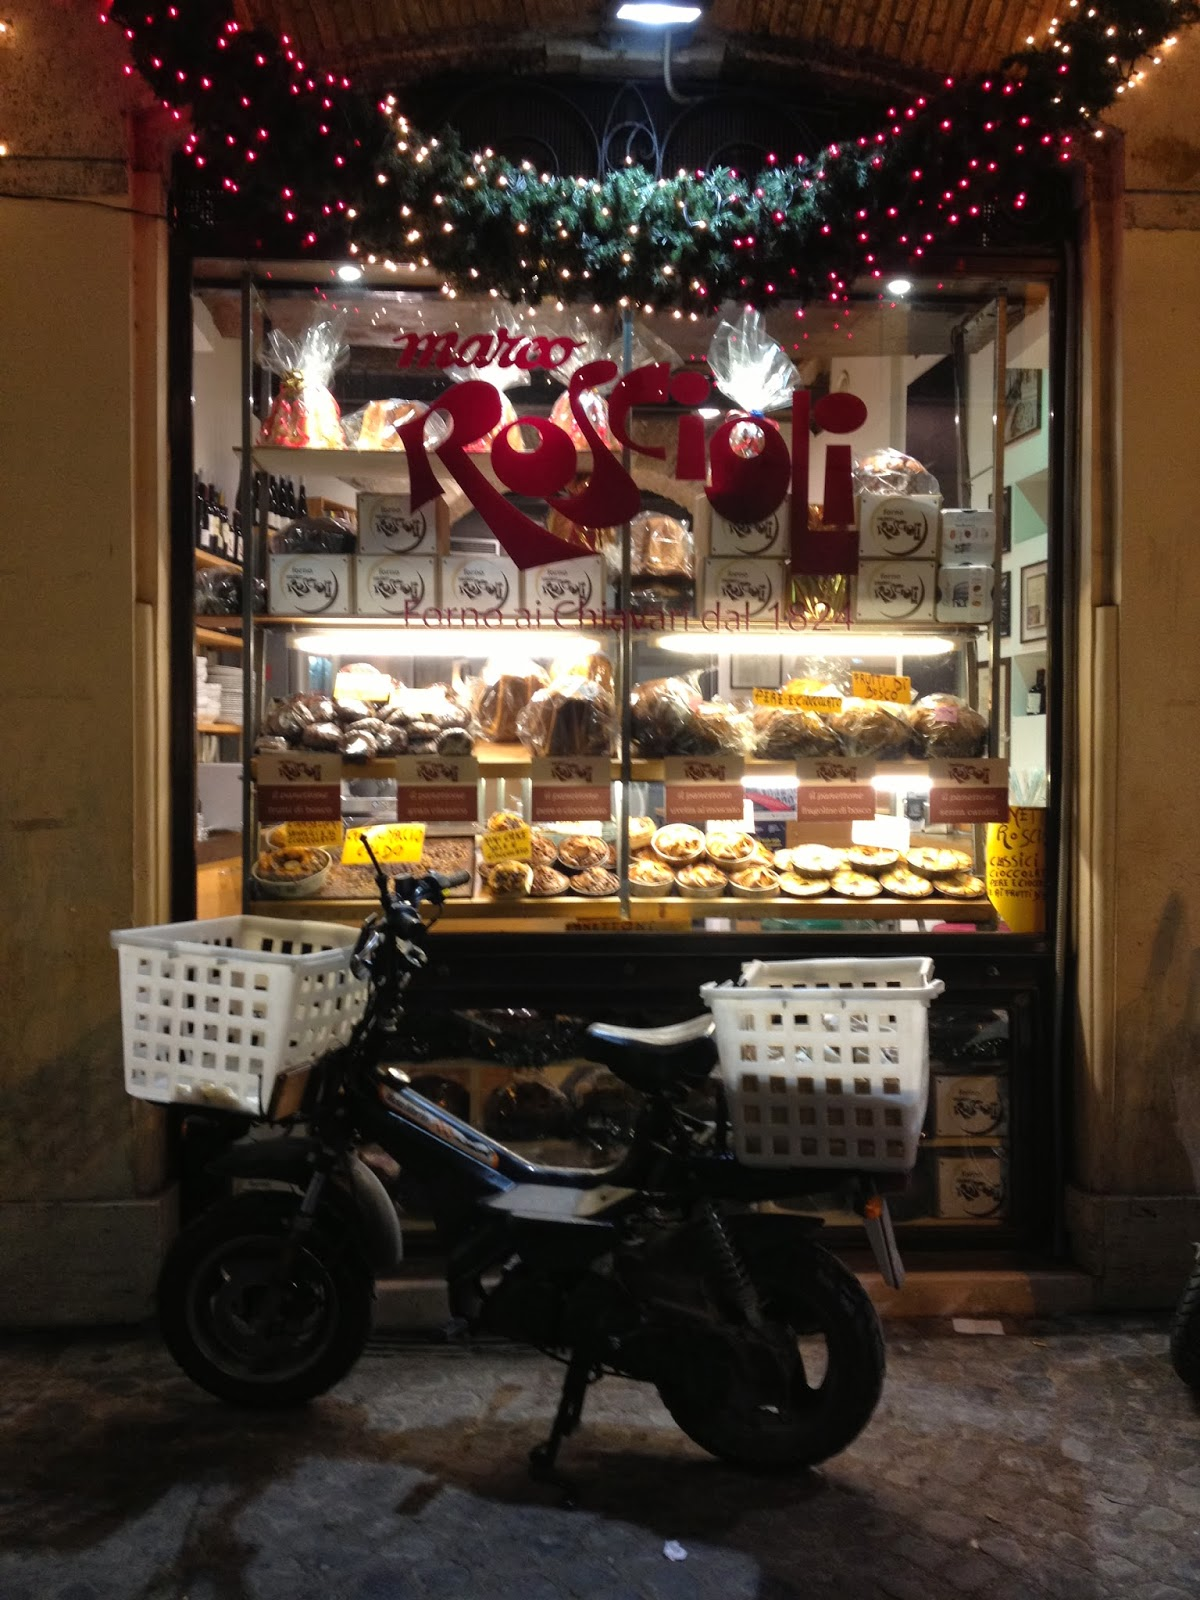 Roscioli bakery, all decked up for Christmas and ready to make some deliveries. © Tiffany Parks